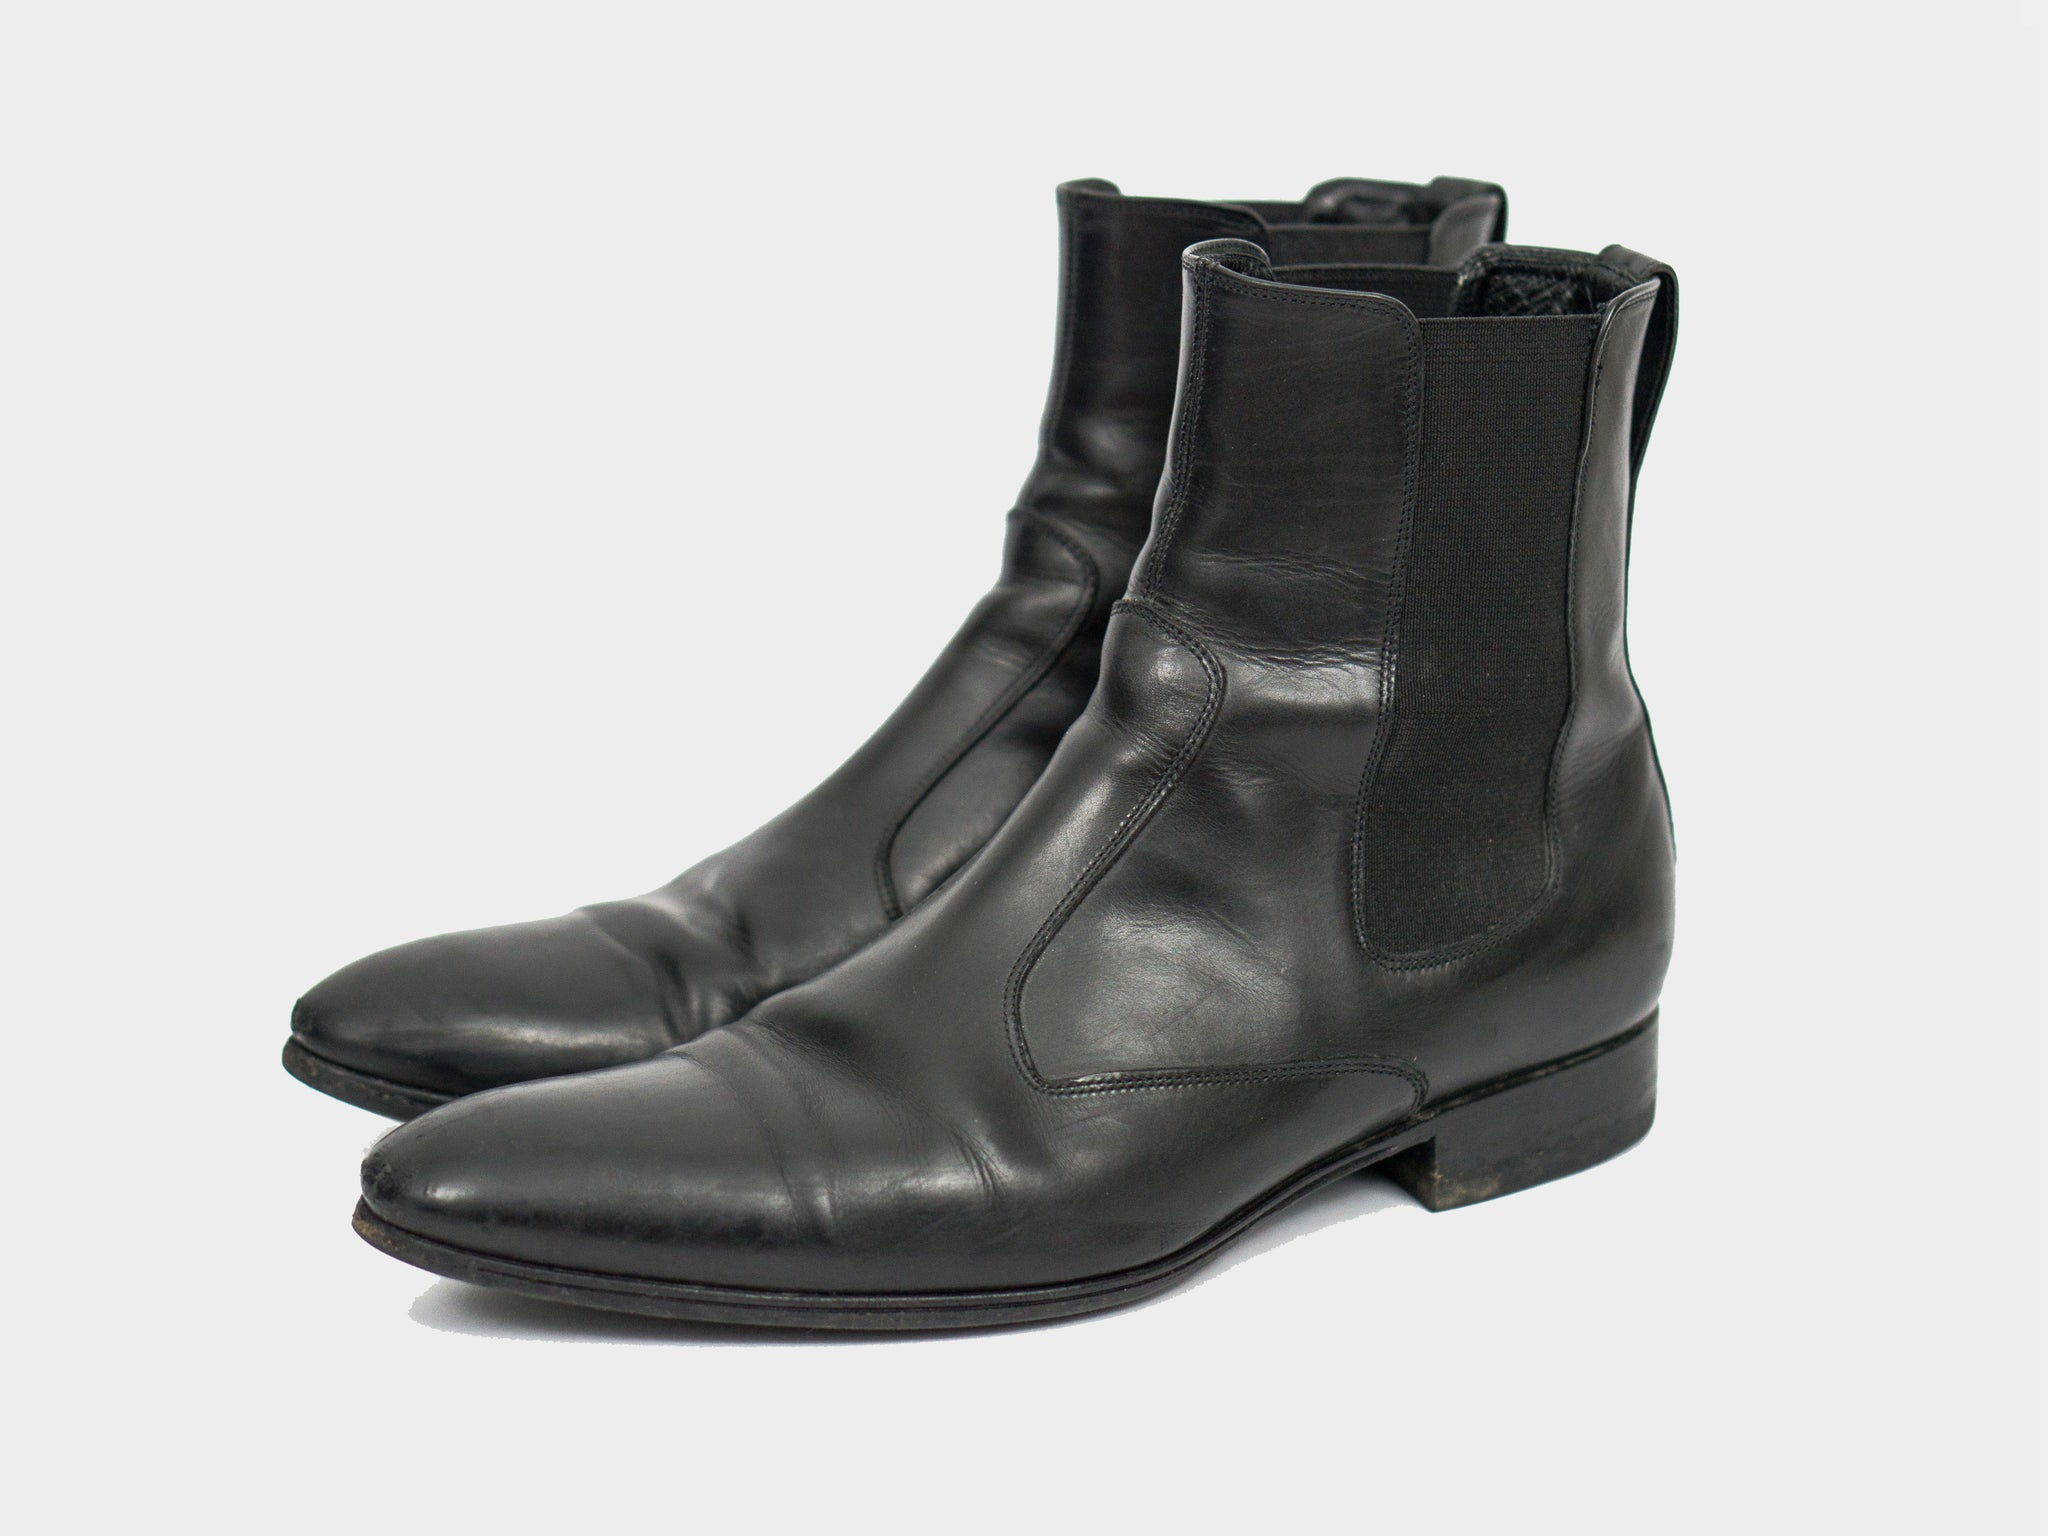 16c0df02daed Dior Homme AW07 Chelsea Boots – HUIBEN